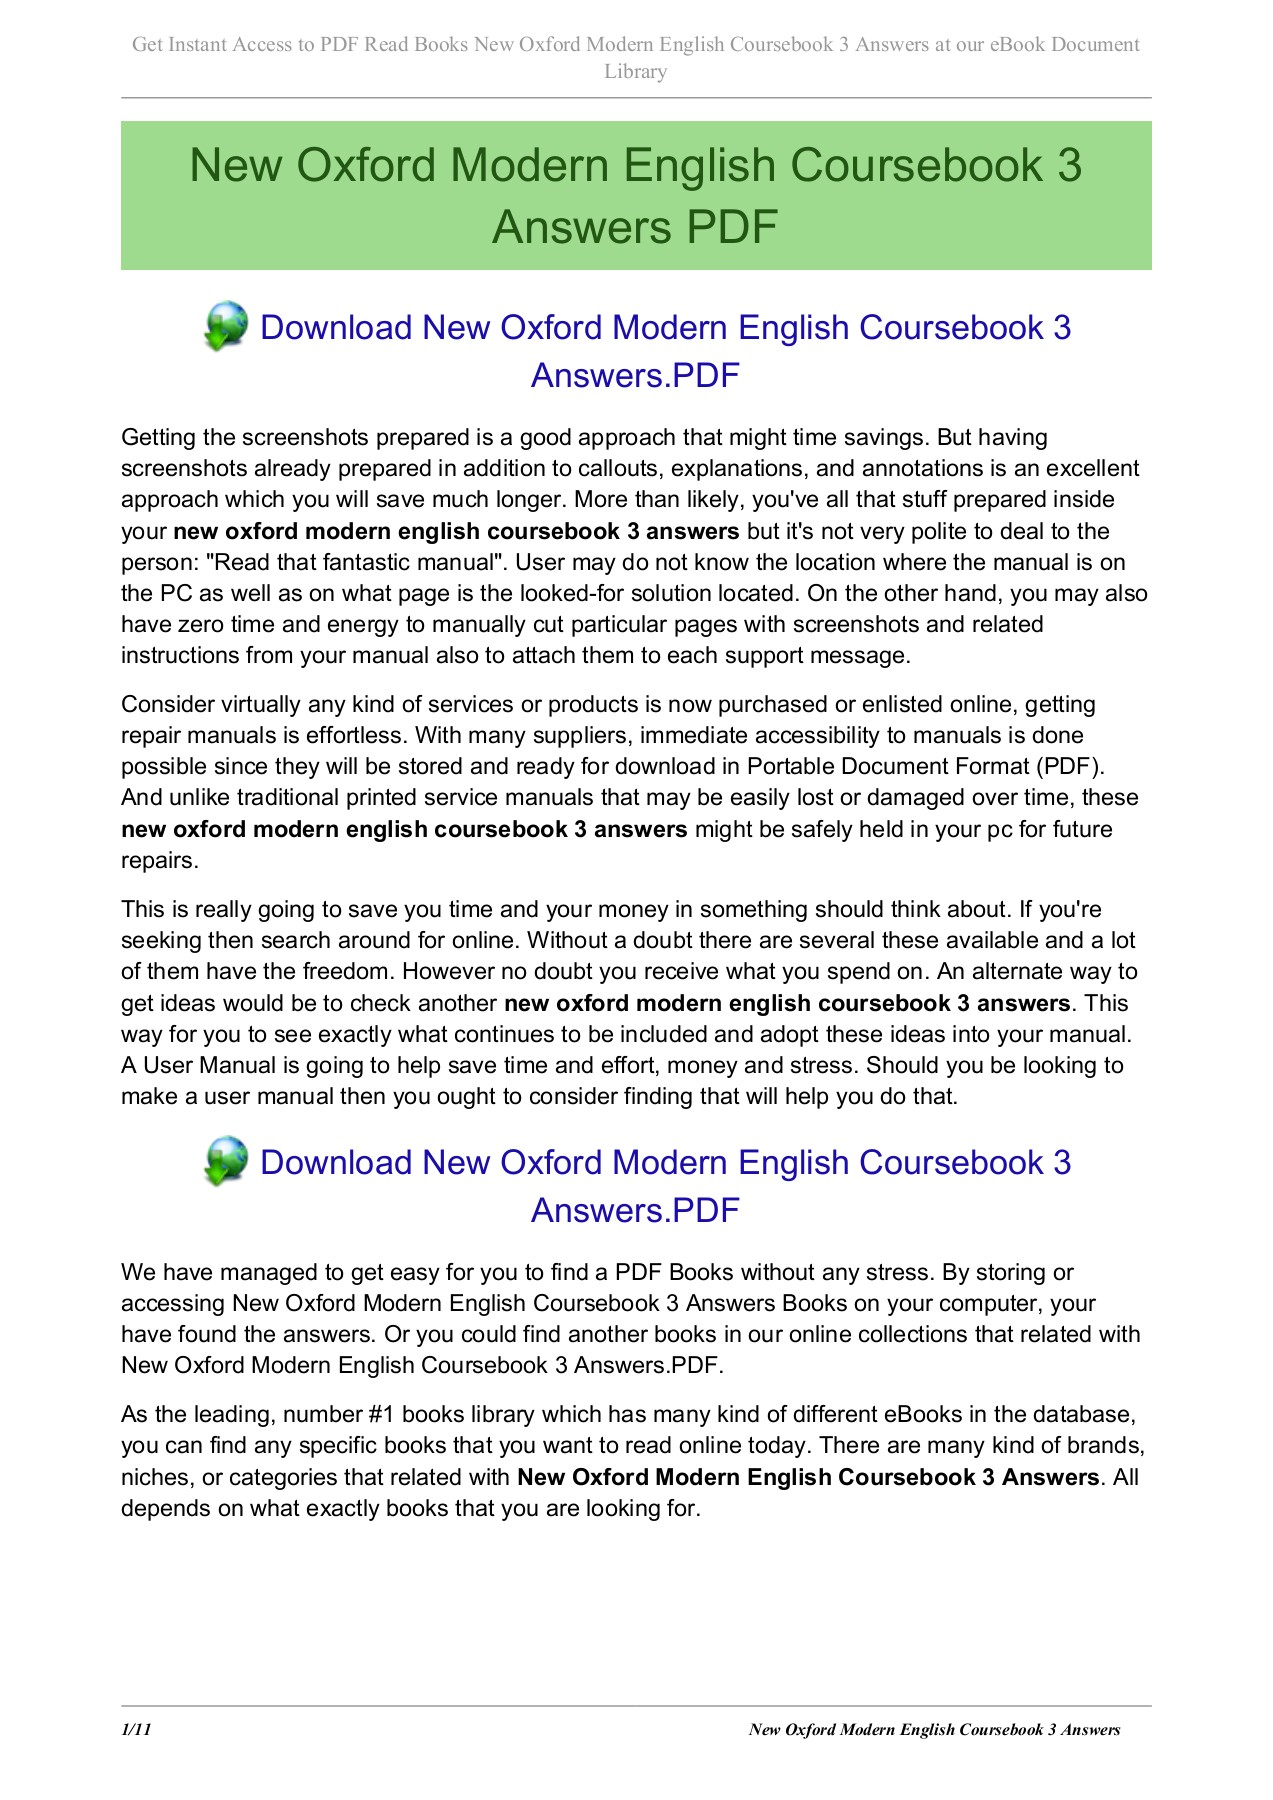 New Oxford Modern English Coursebook 3 Answers